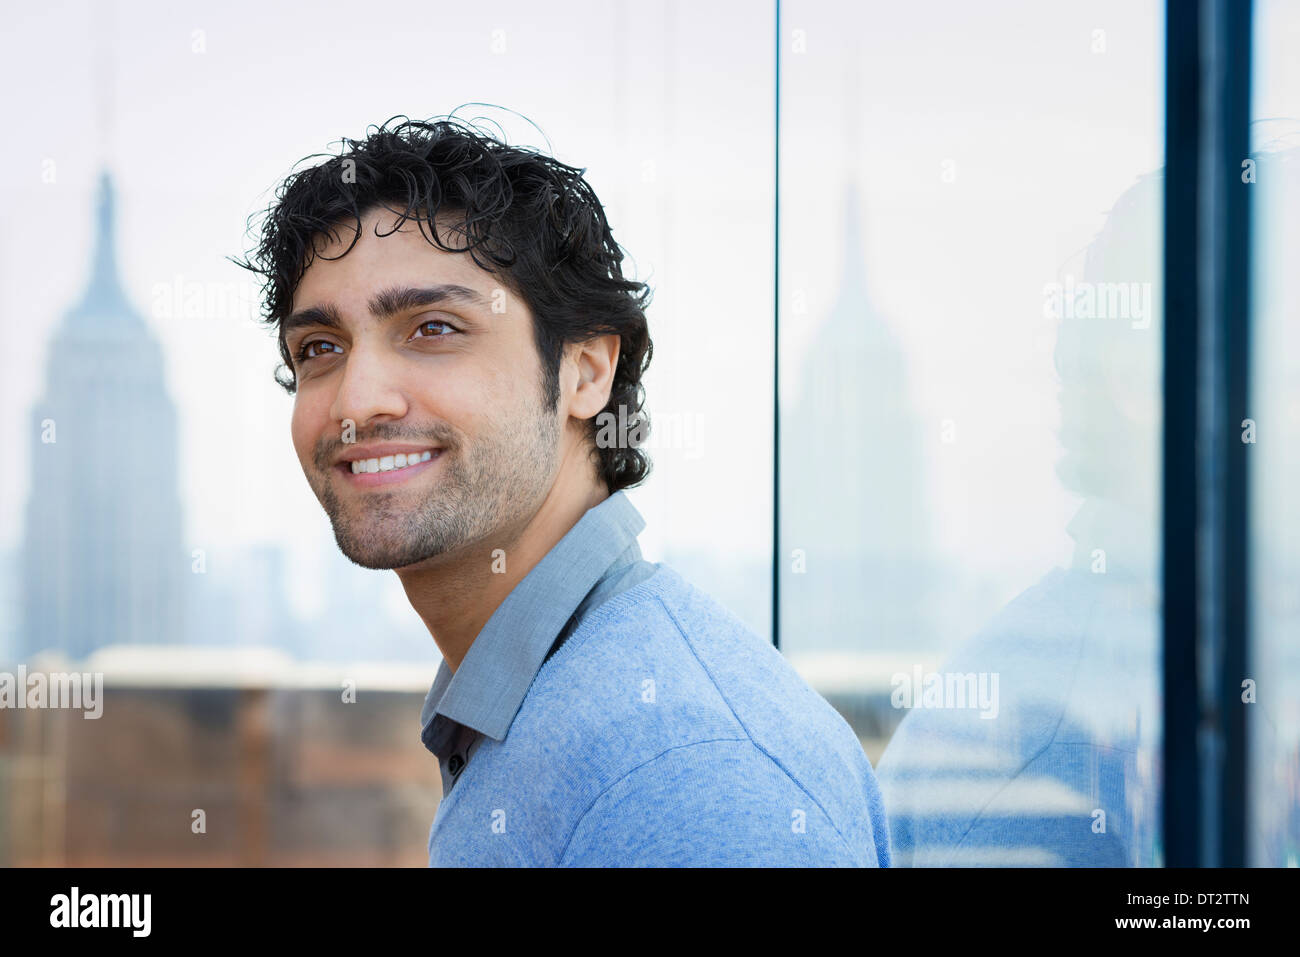 Urban Lifestyle A young man with black curly hair wearing a blue shirt in the lobby of a building - Stock Image